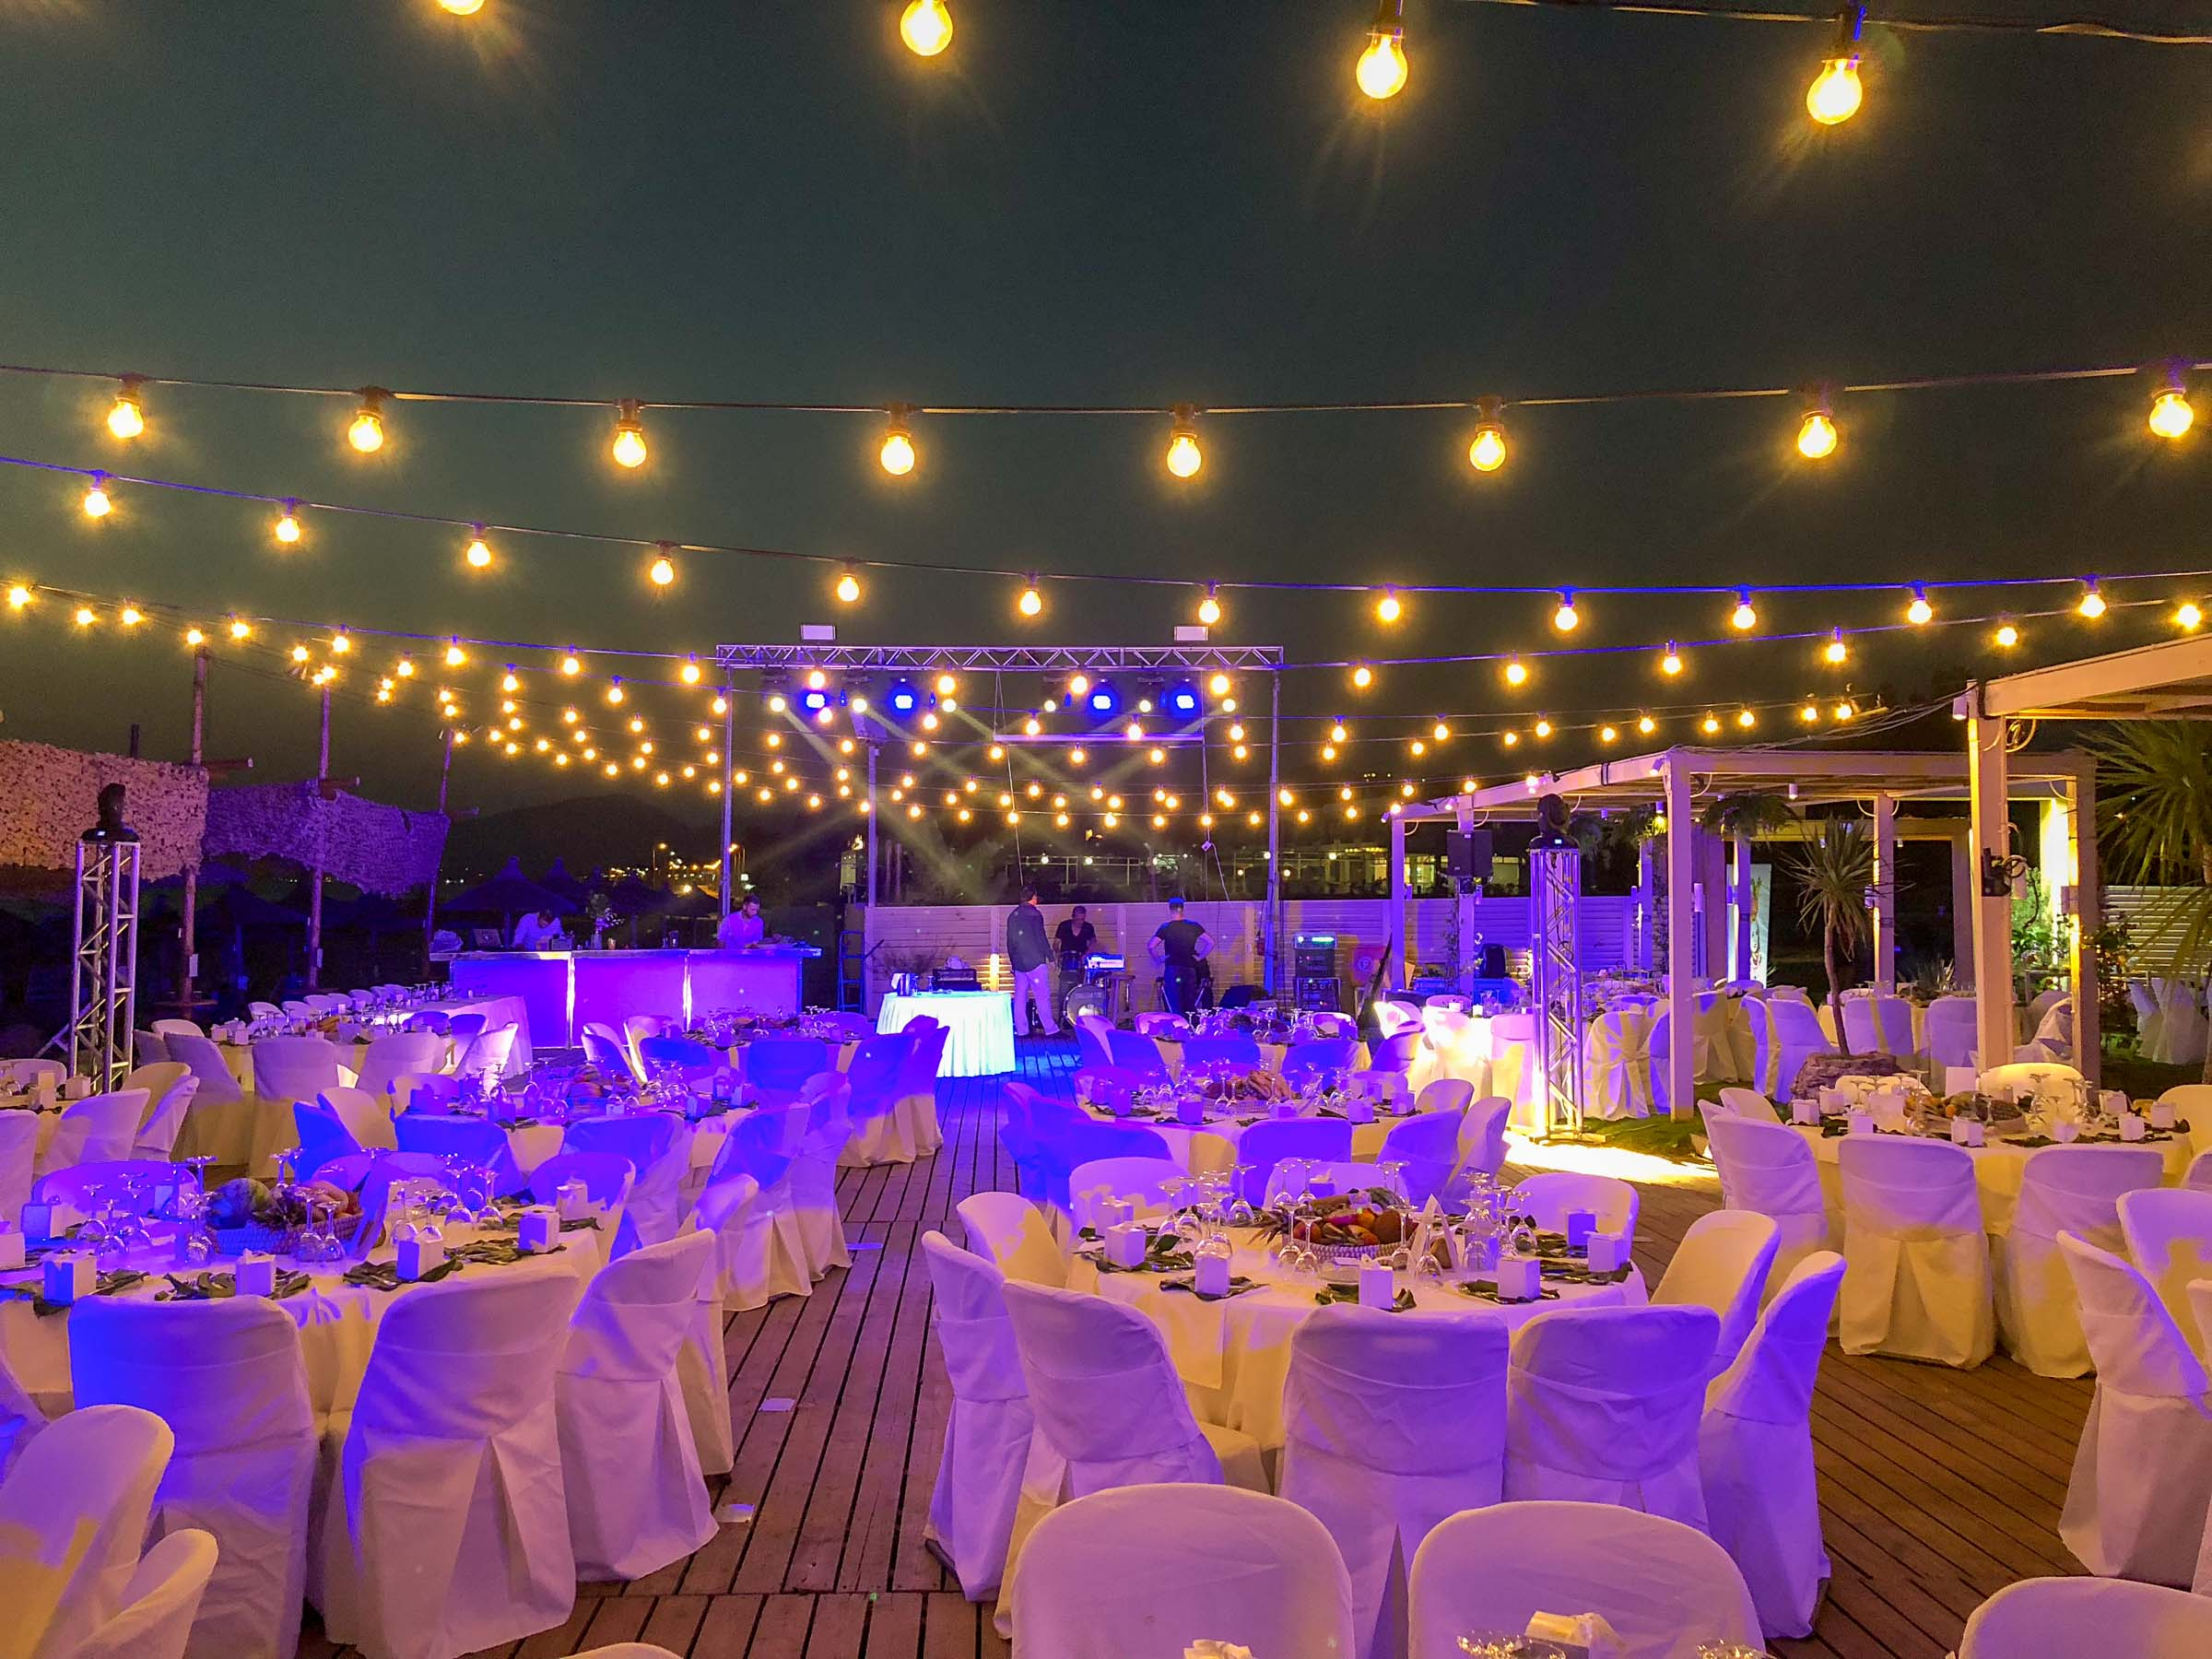 Garland lighting over tables